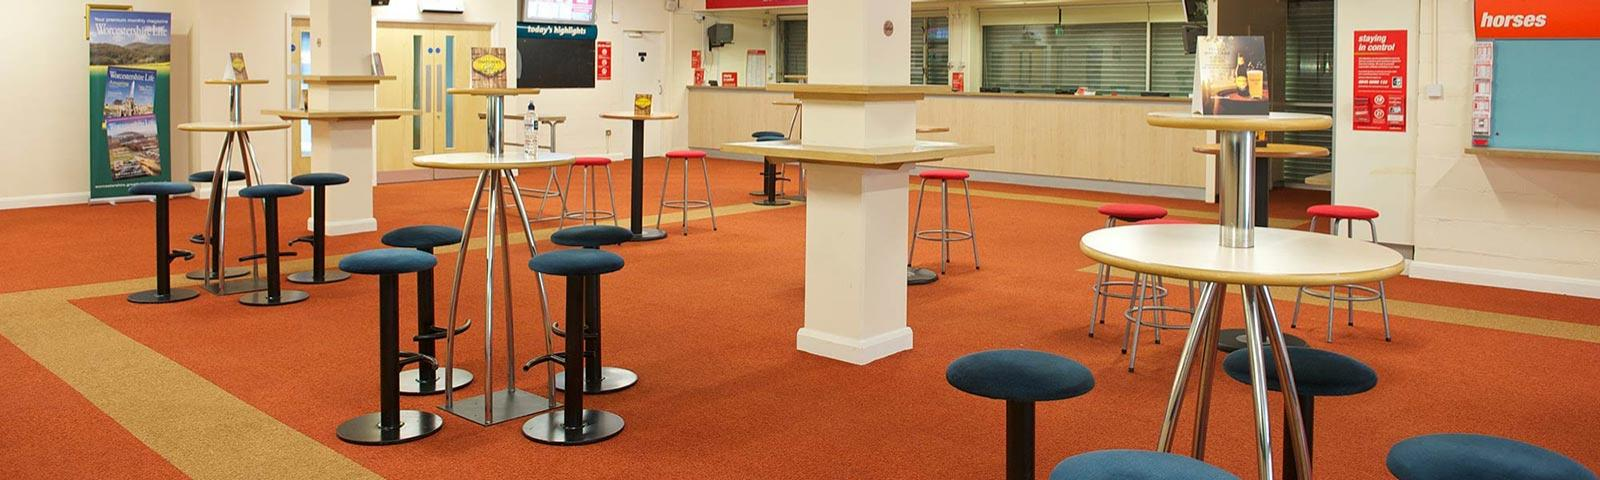 Several smaller round tables dotted around a bar area.